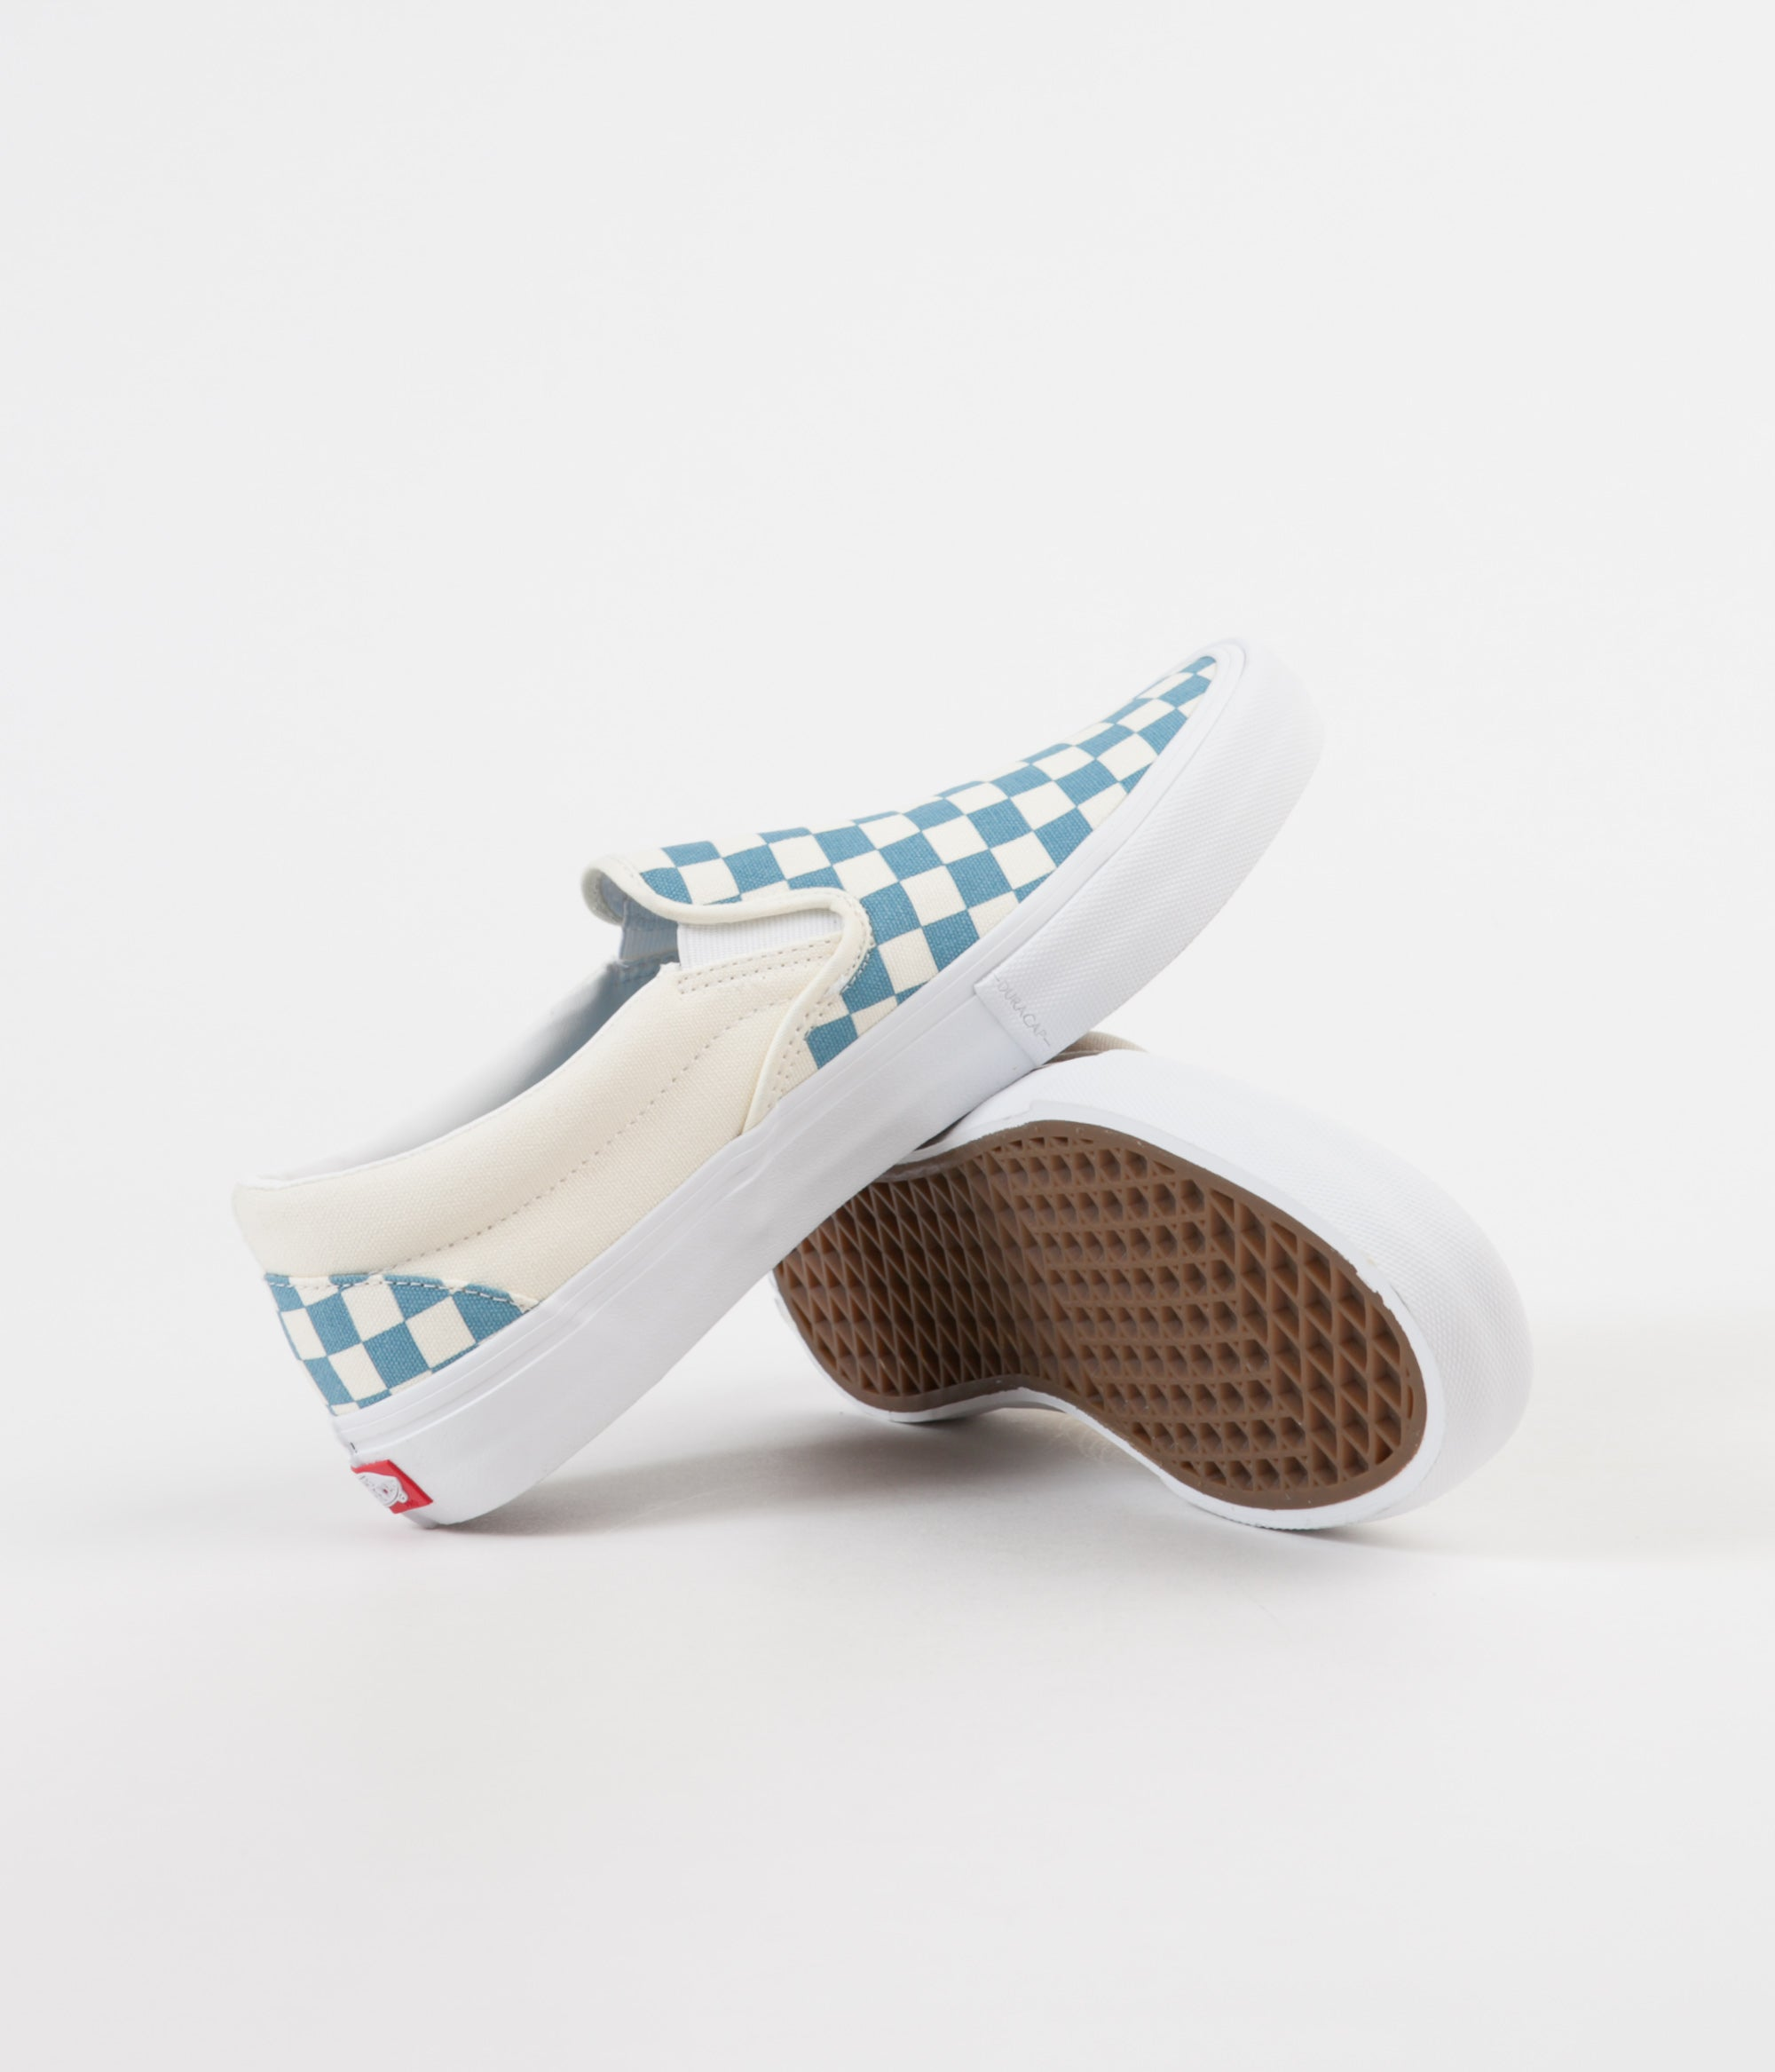 5454f2af74 ... Vans Slip On Pro Checkerboard Shoes - Adriatic Blue   White ...